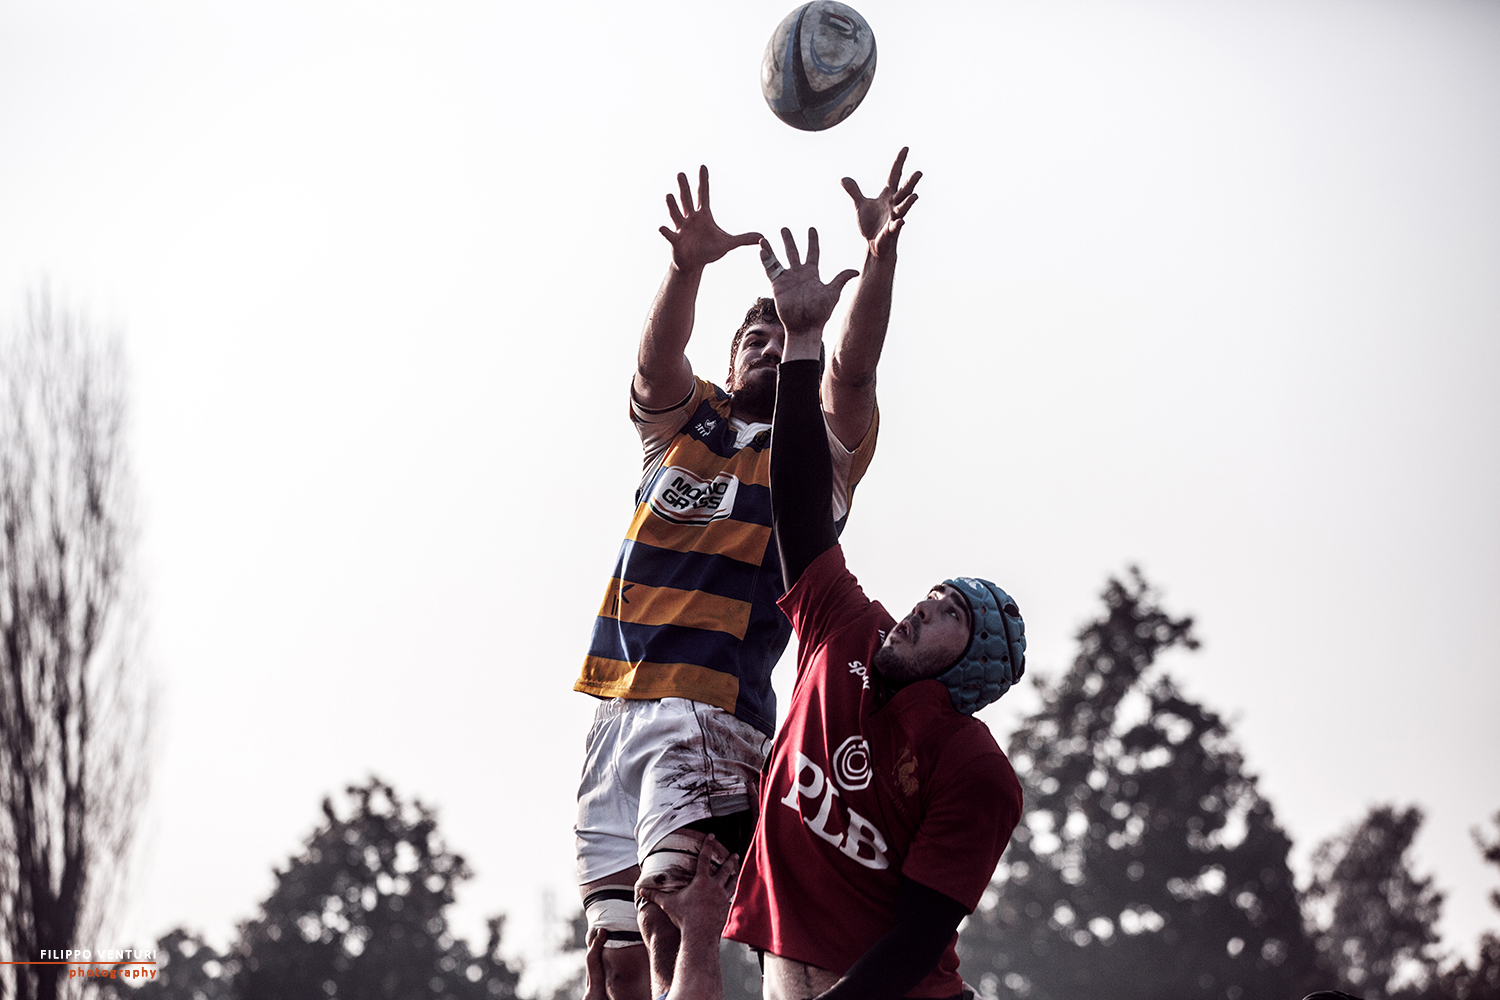 romagna_rugby_parma_10.jpg